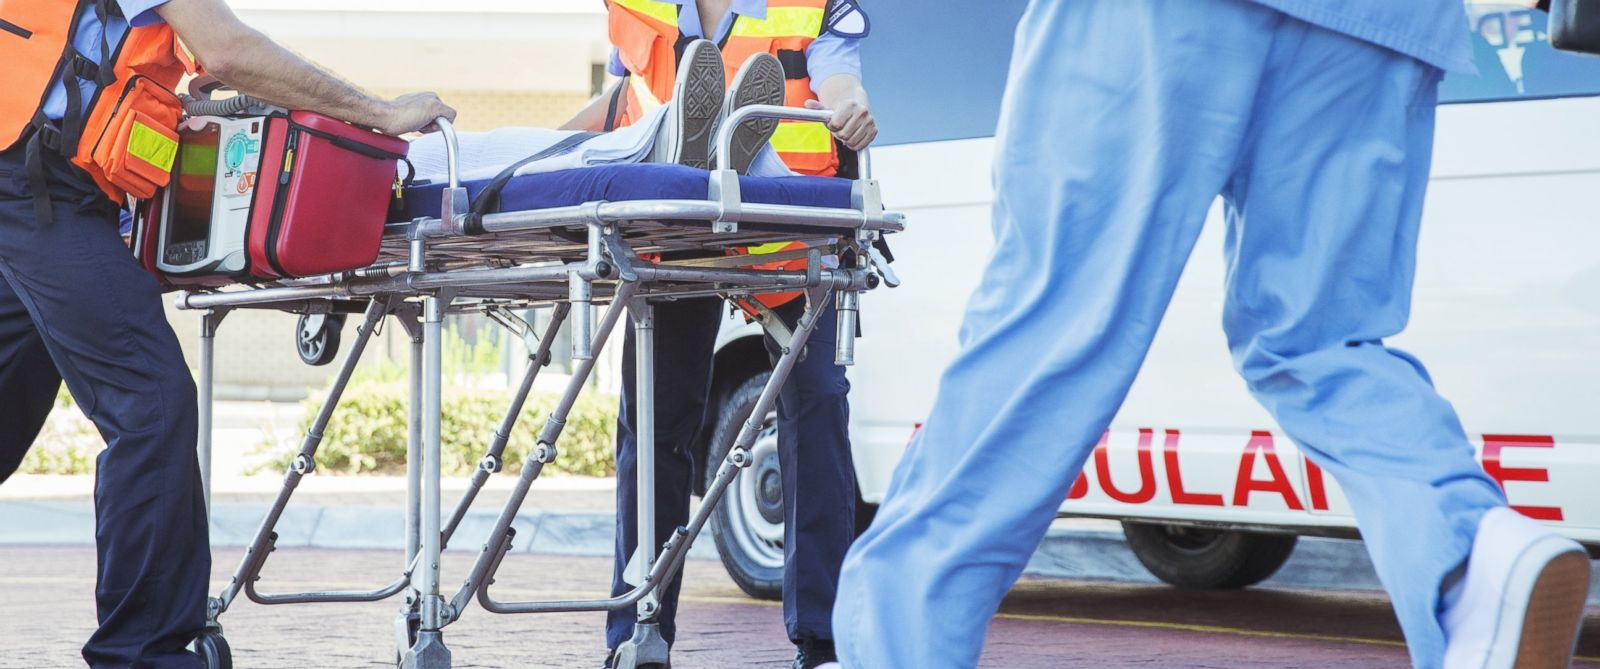 PHOTO: Paramedics wheel a patient into the emergency room in this undated stock image.